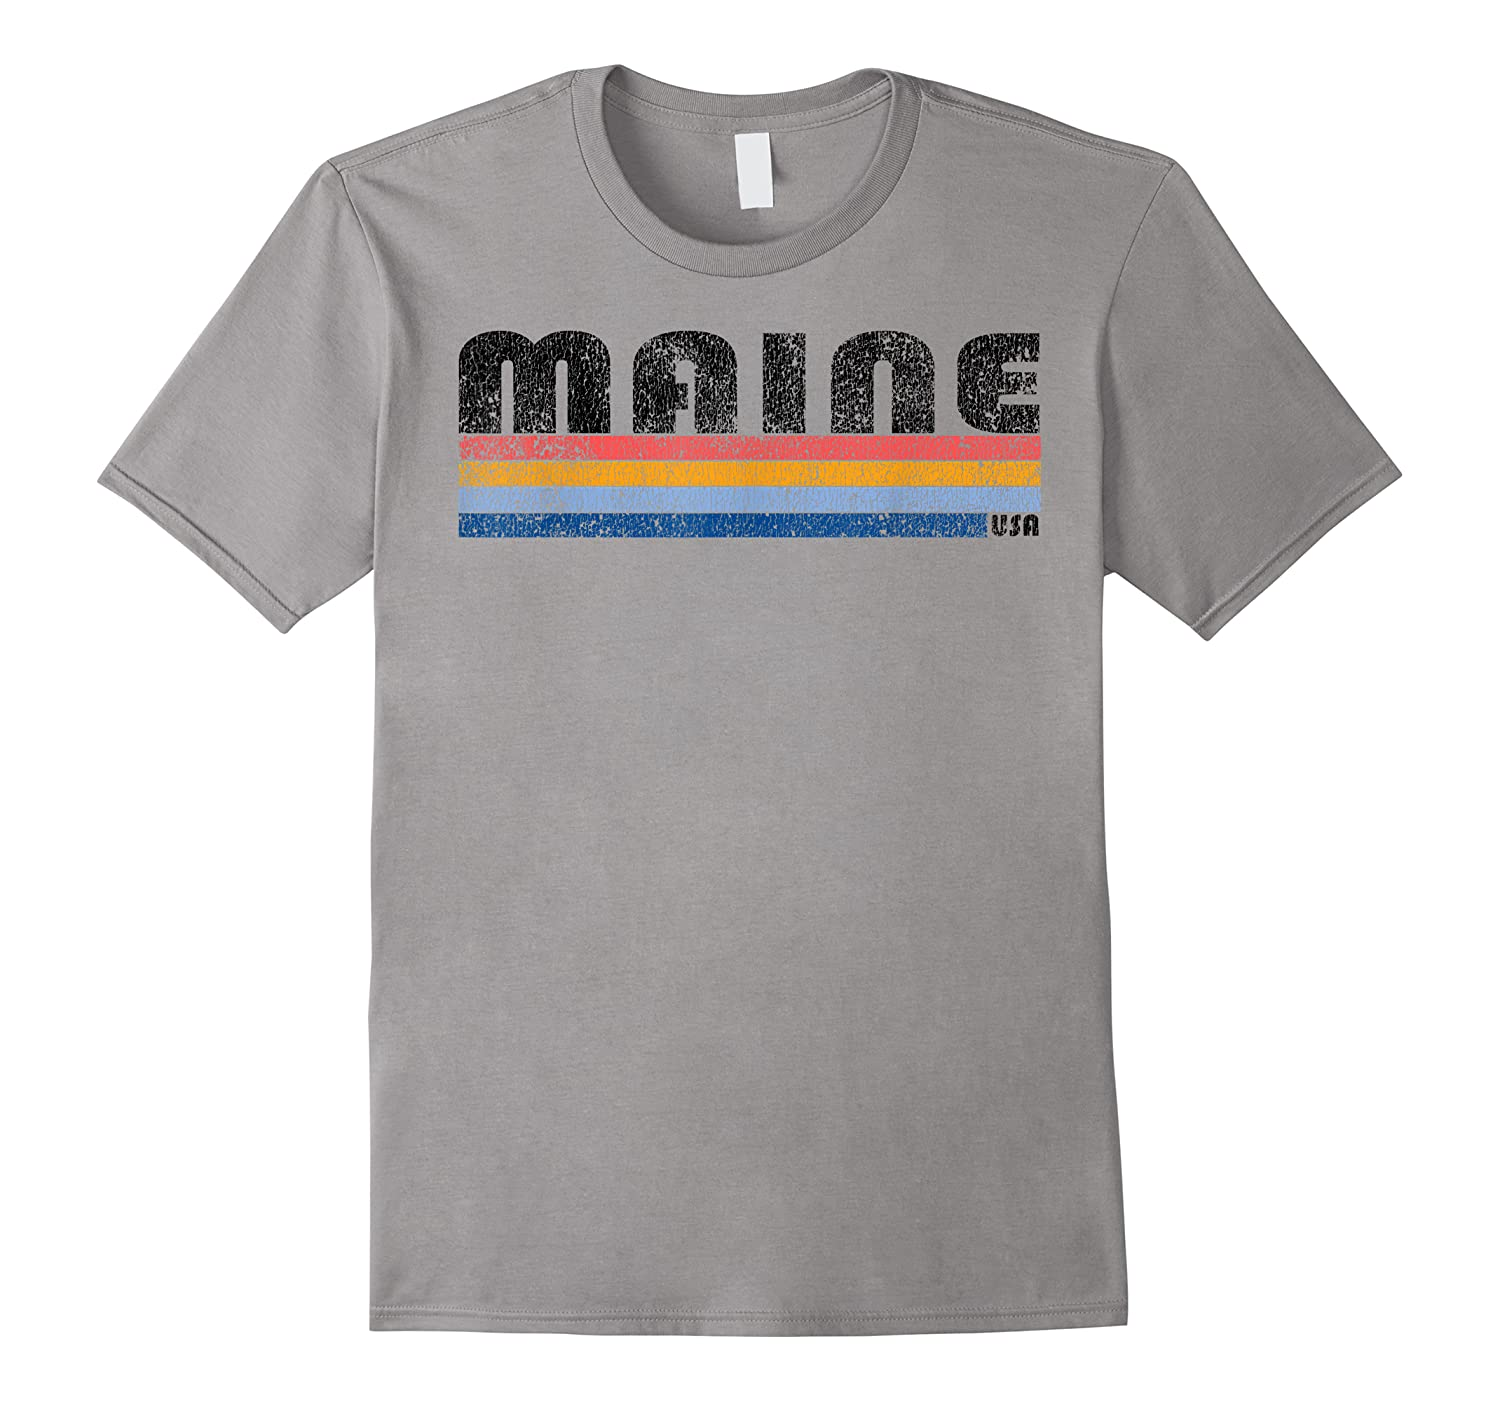 Vintage 1980s Style Maine Shirts